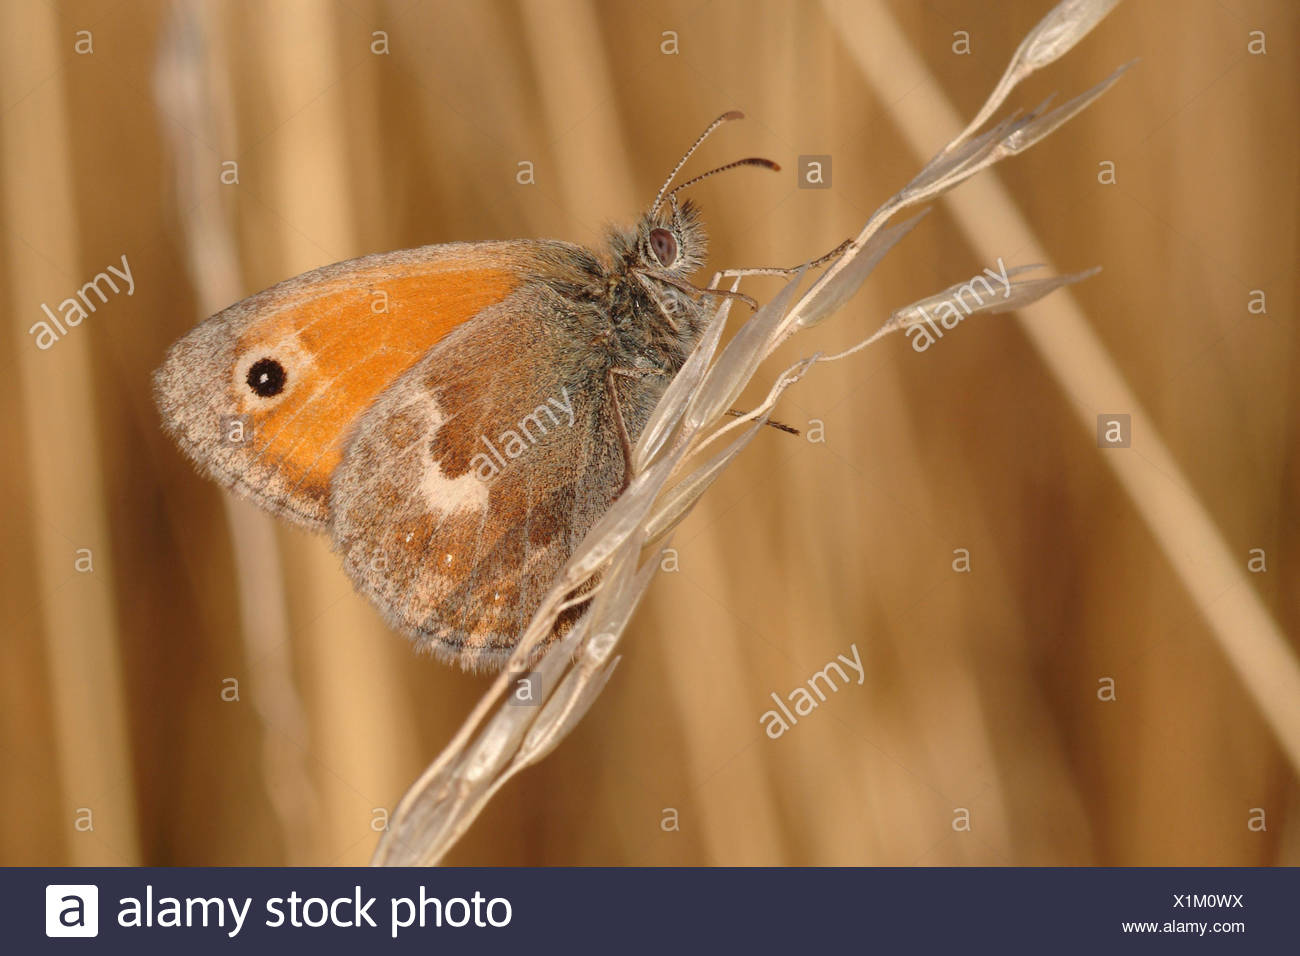 small heath (Coenonympha pamphilus), sitting at grass ear, Germany - Stock Image